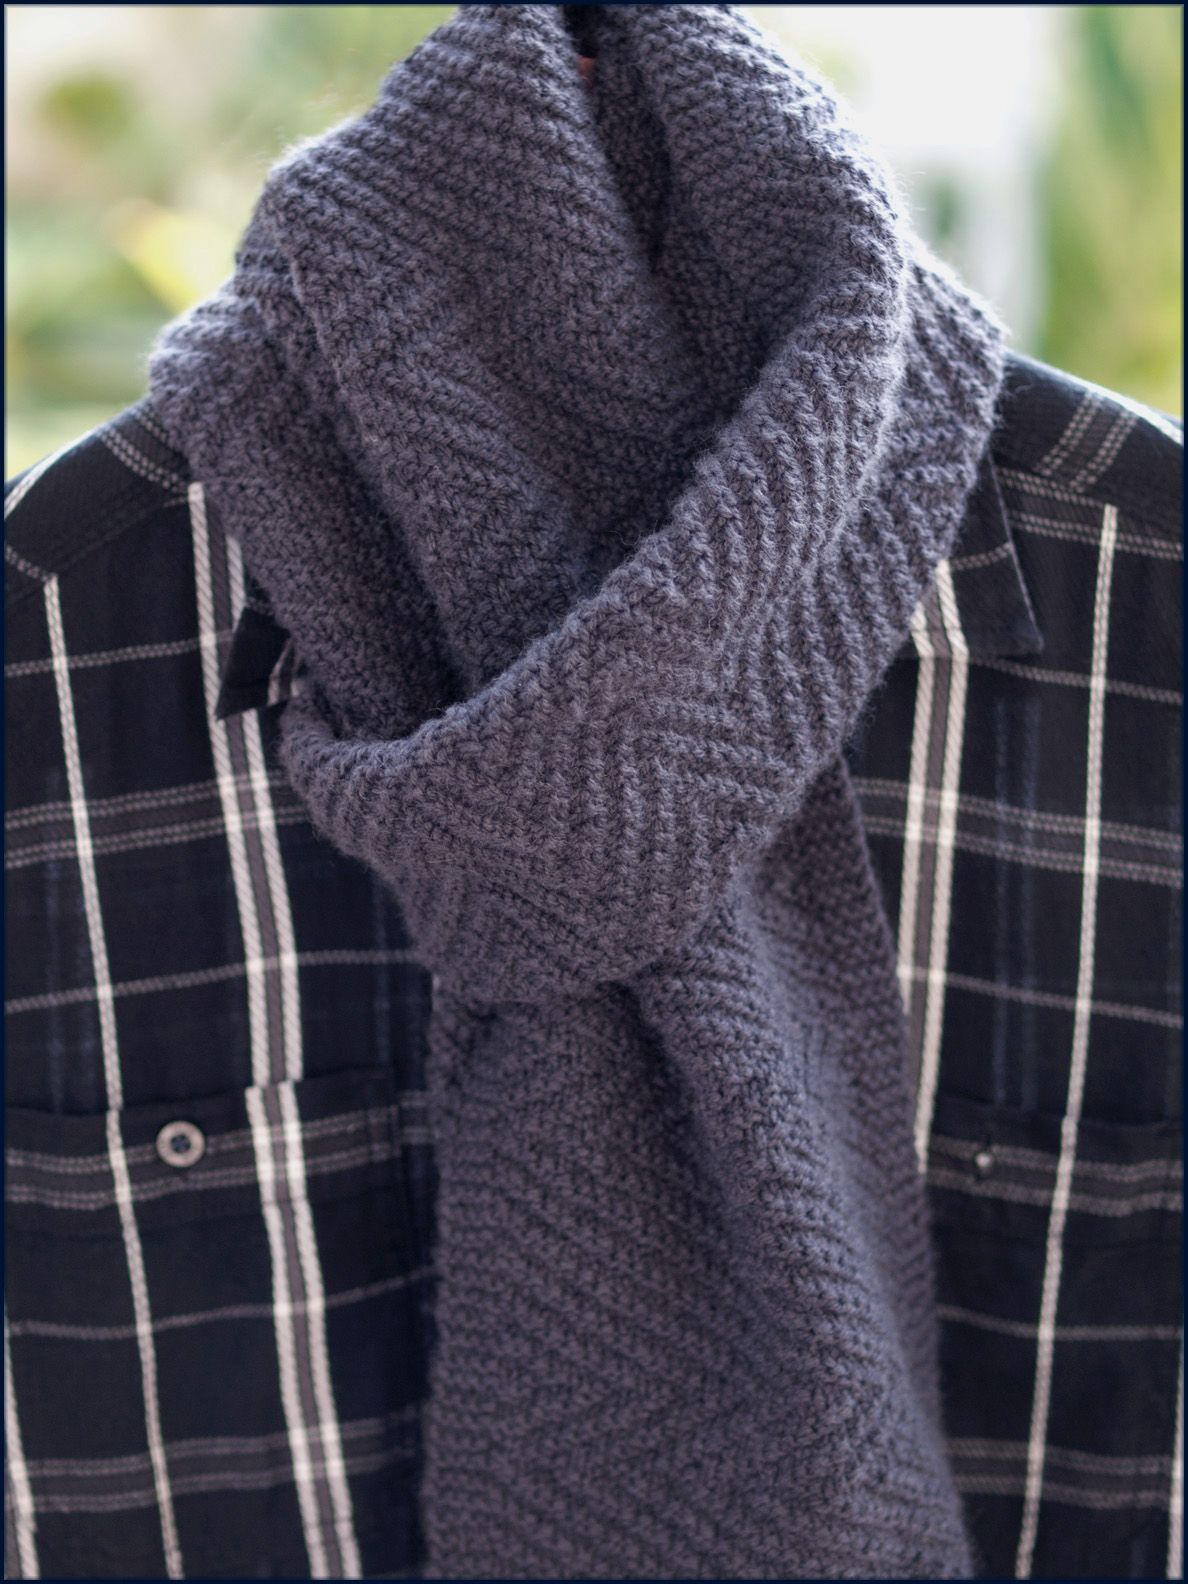 Lamberhurst Scarf Knitting Pattern - worked in a soft merino and cashmere yar...